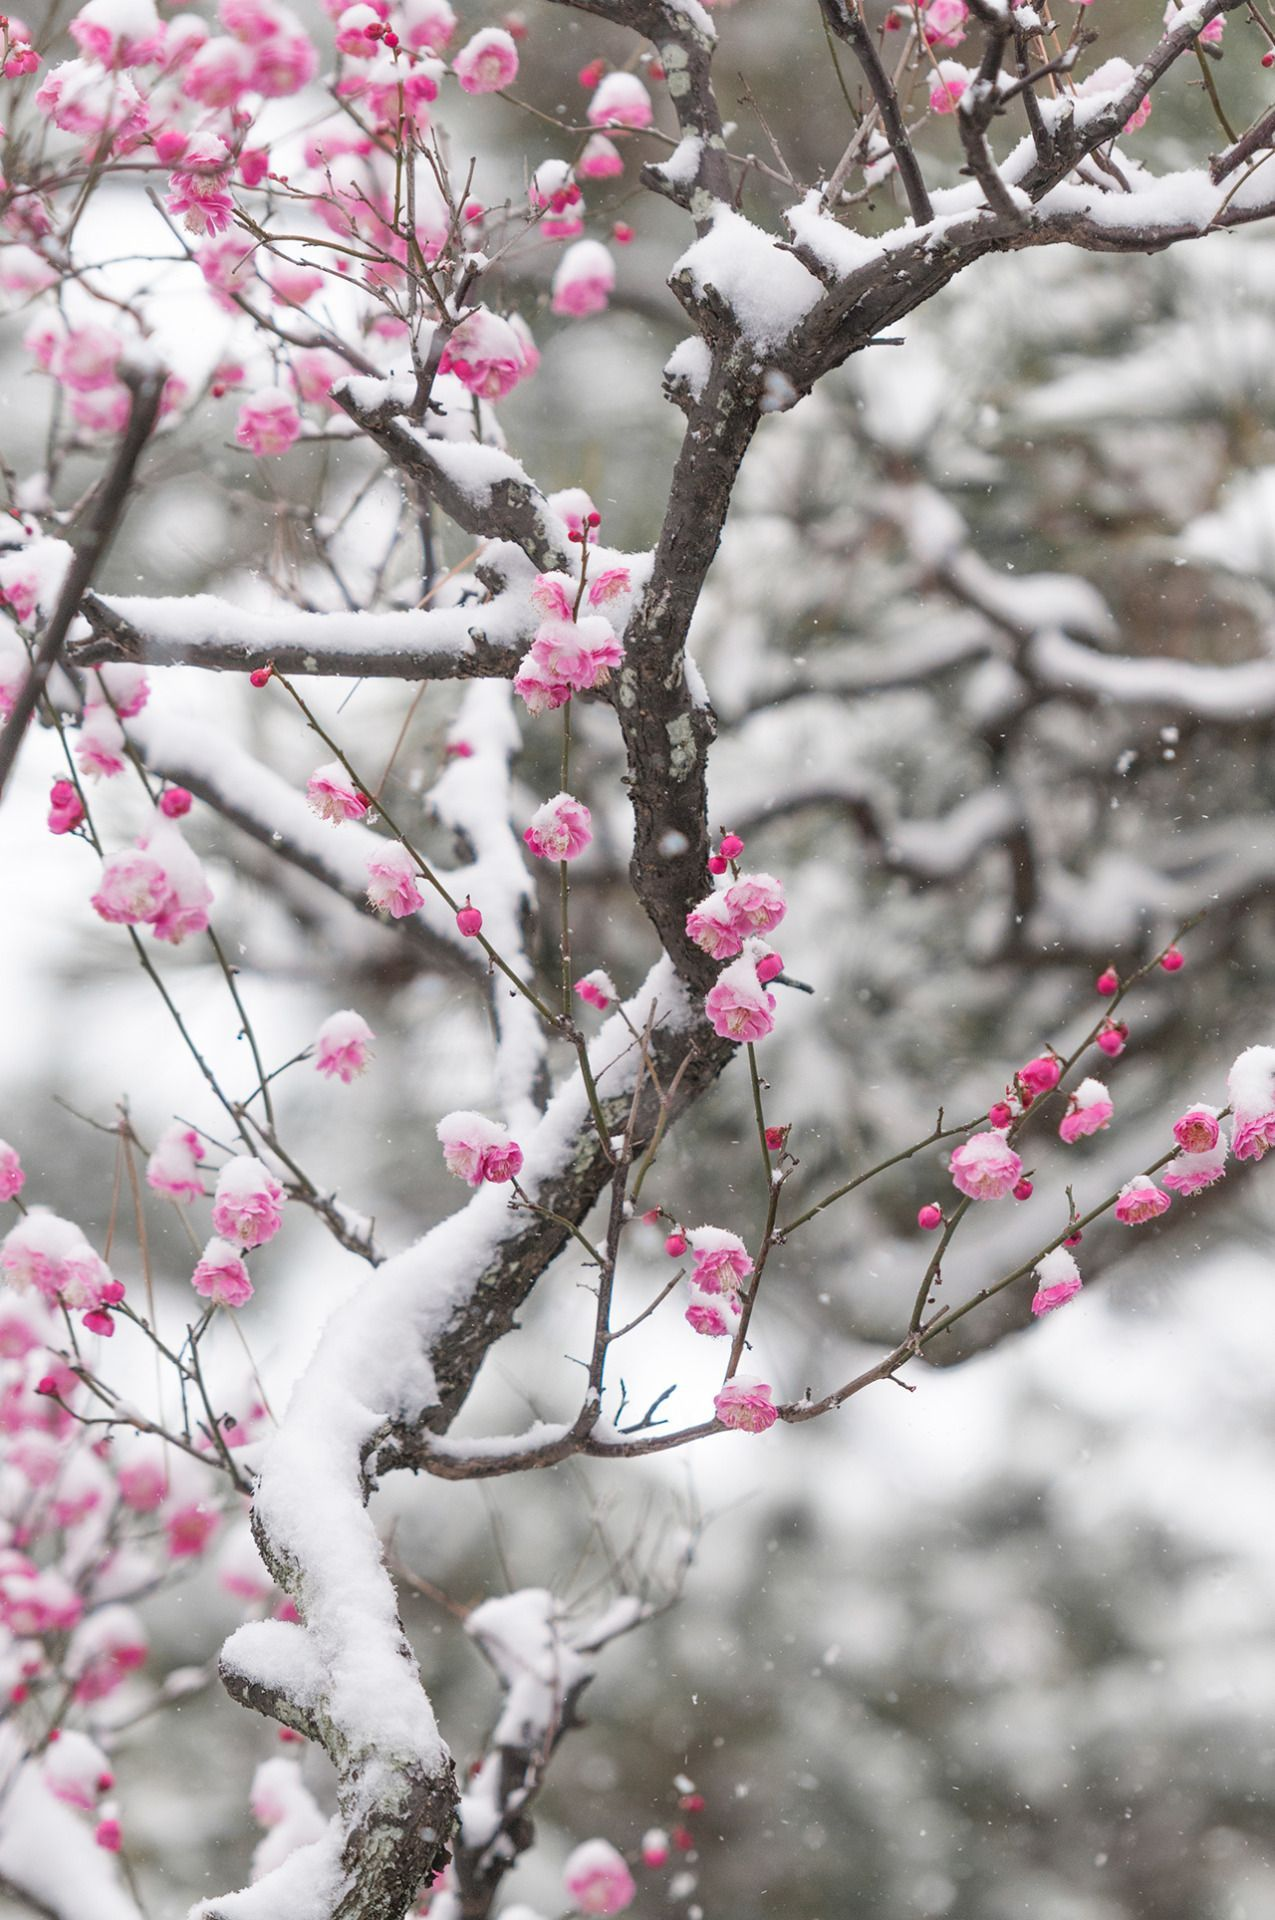 Flowers In Snow Flowers Nature Love Flowers Snowy Day Photo Tree Blossom Flower Cherry Blossom Winter W Rose Flower Wallpaper Flowers Nature Love Flowers